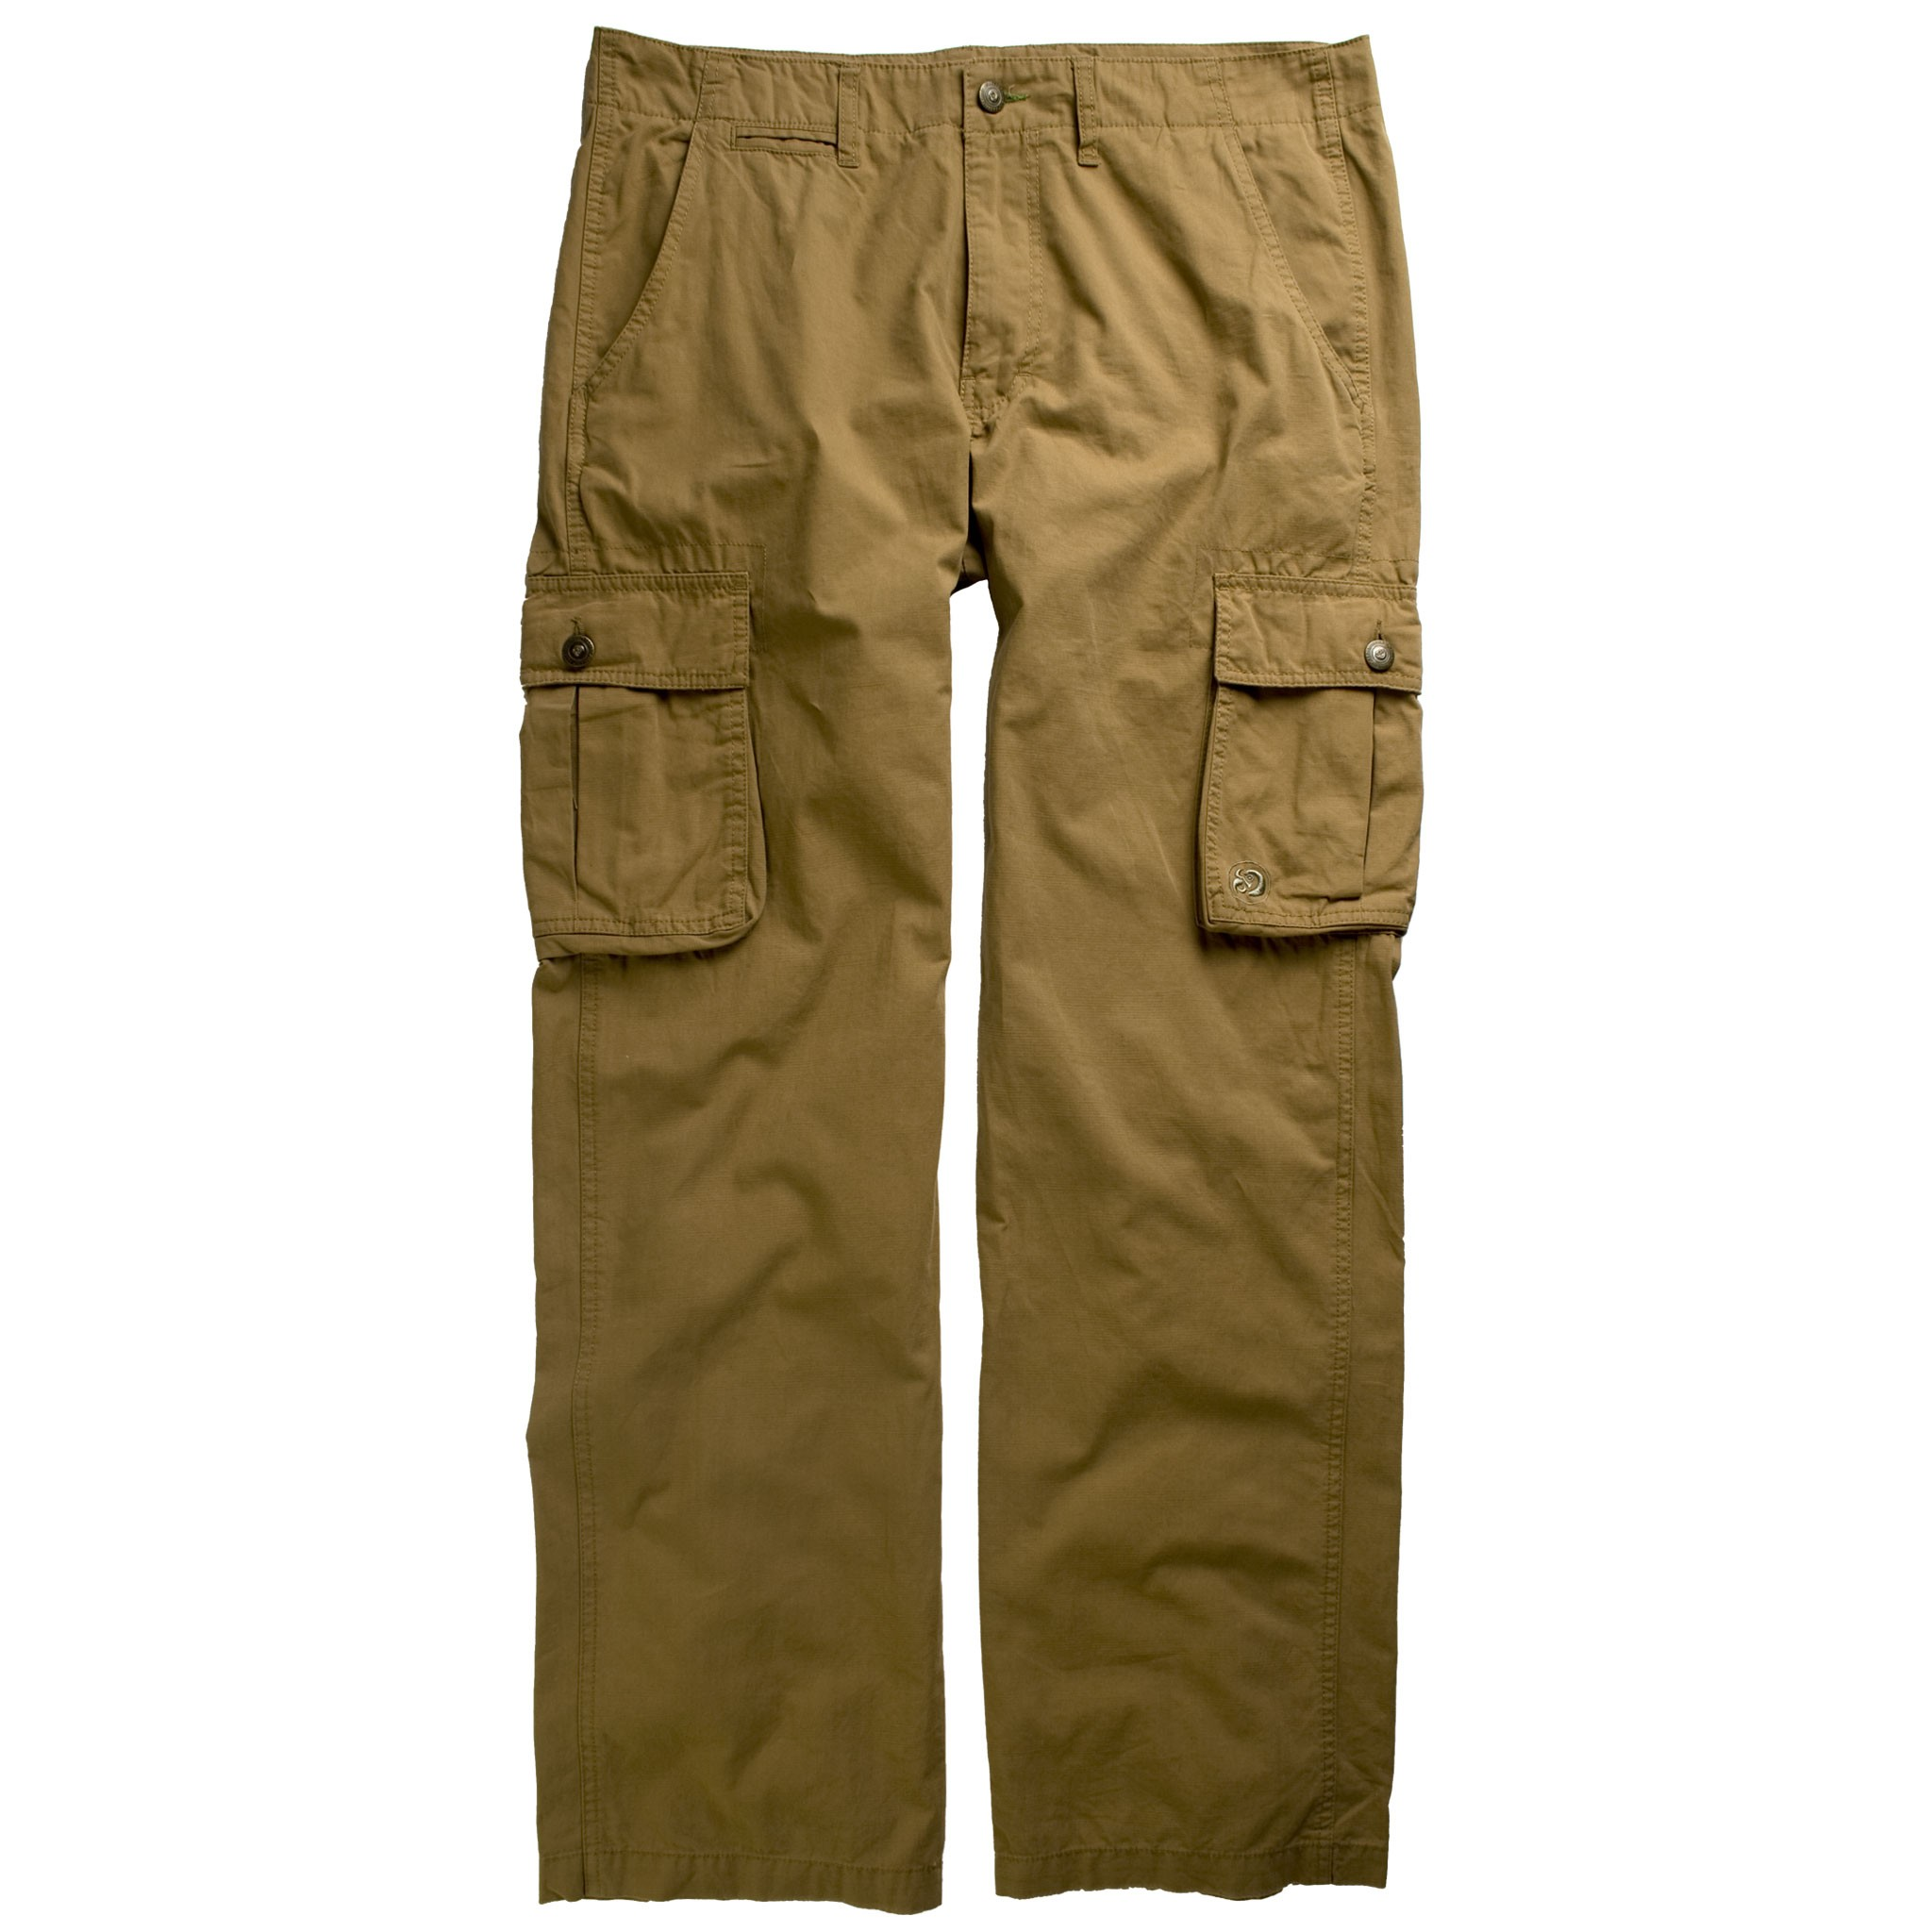 Luxury  Khaki OverBelly Maternity Cargo Capri Pants  Women  Zulily